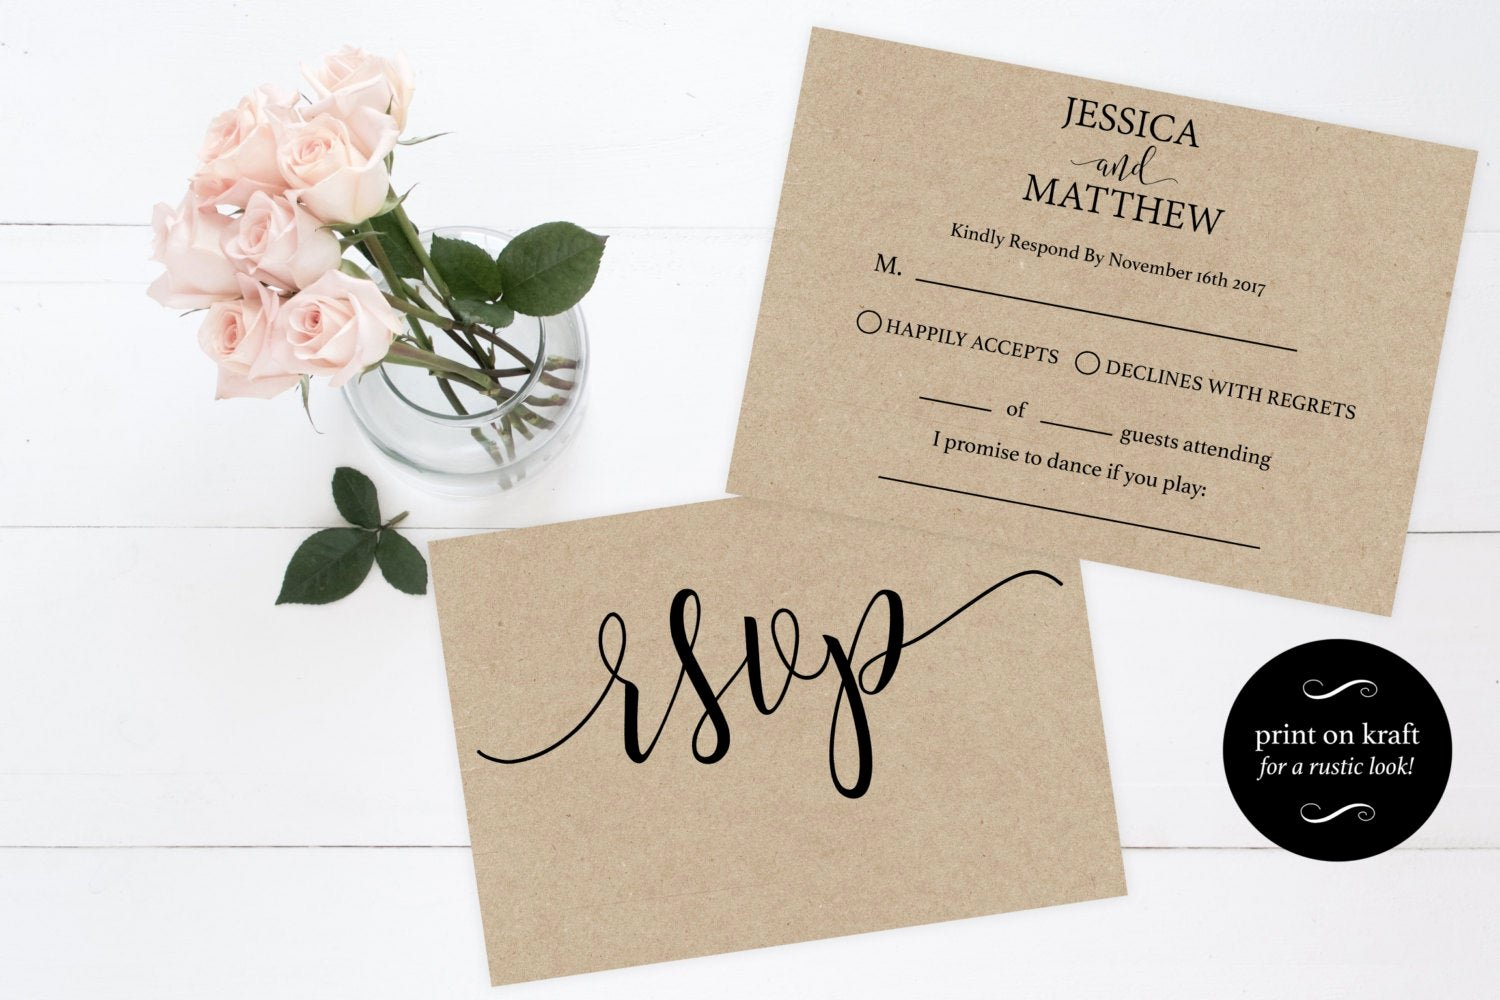 Wedding Rsvp Postcards Template Fresh Rsvp Wedding Template Wedding Rsvp Cards Rsvp Online